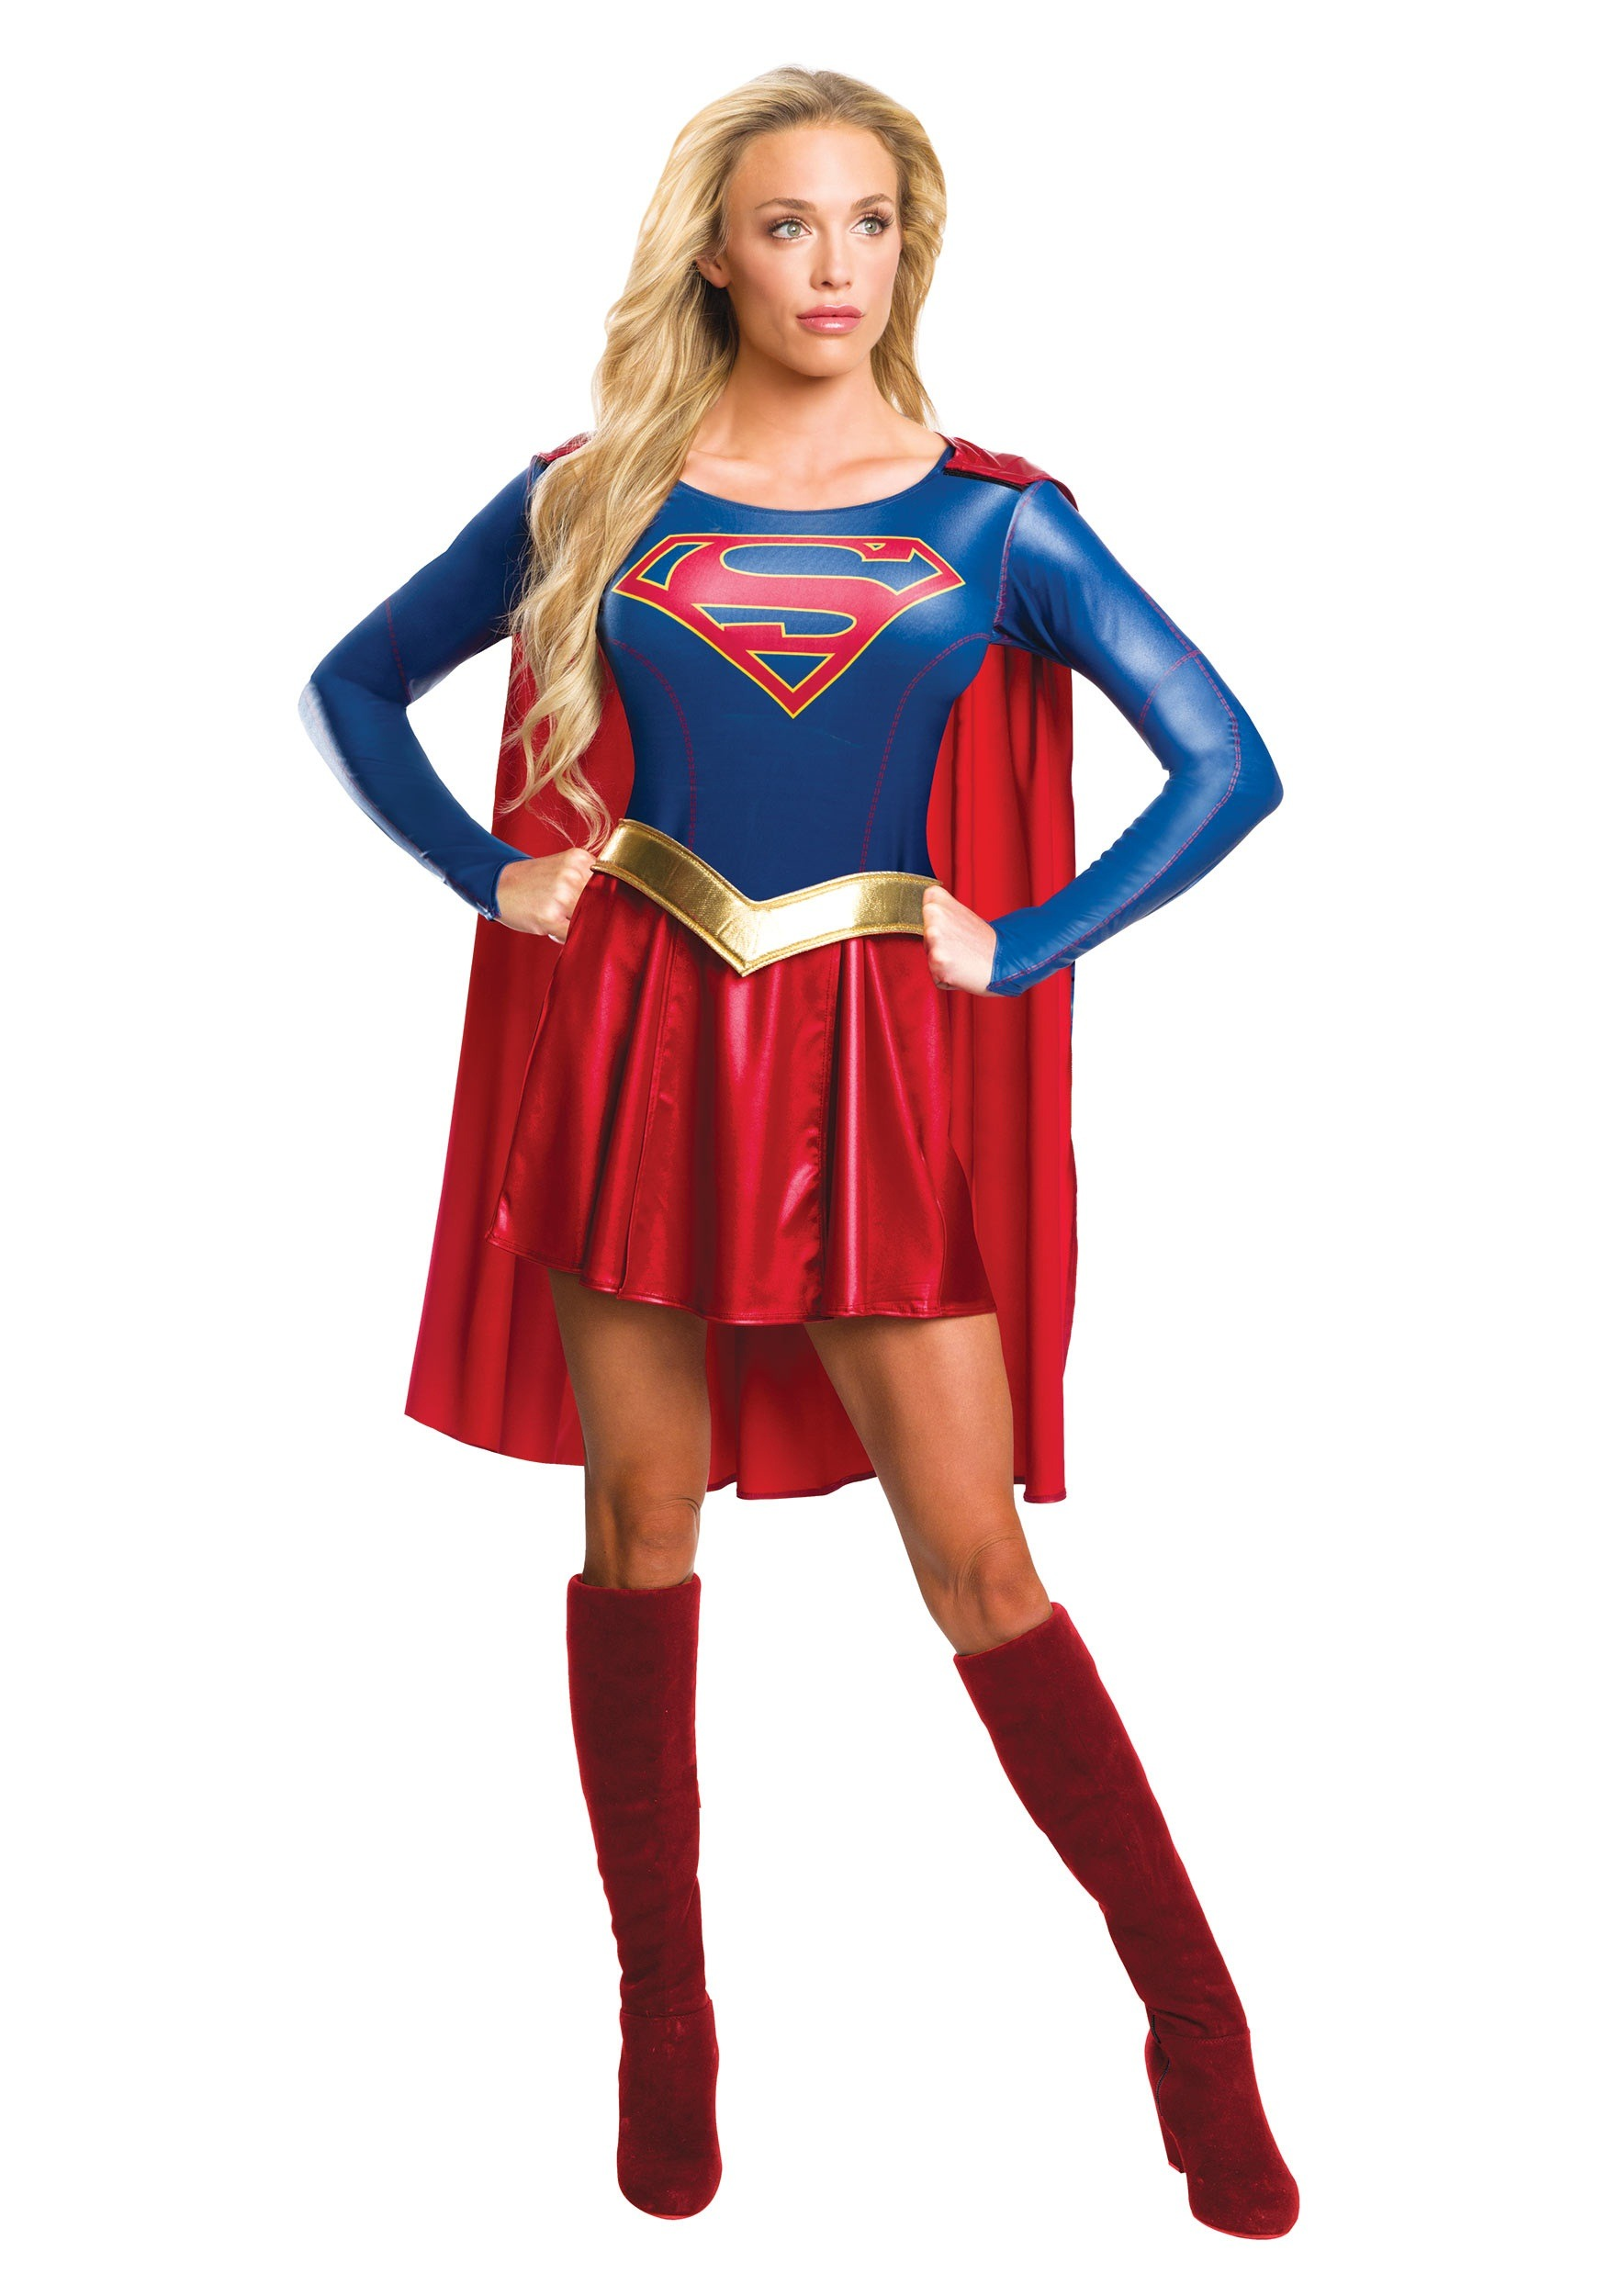 Womens superhero costumes for halloween halloweencostumes womens supergirl tv costume solutioingenieria Choice Image